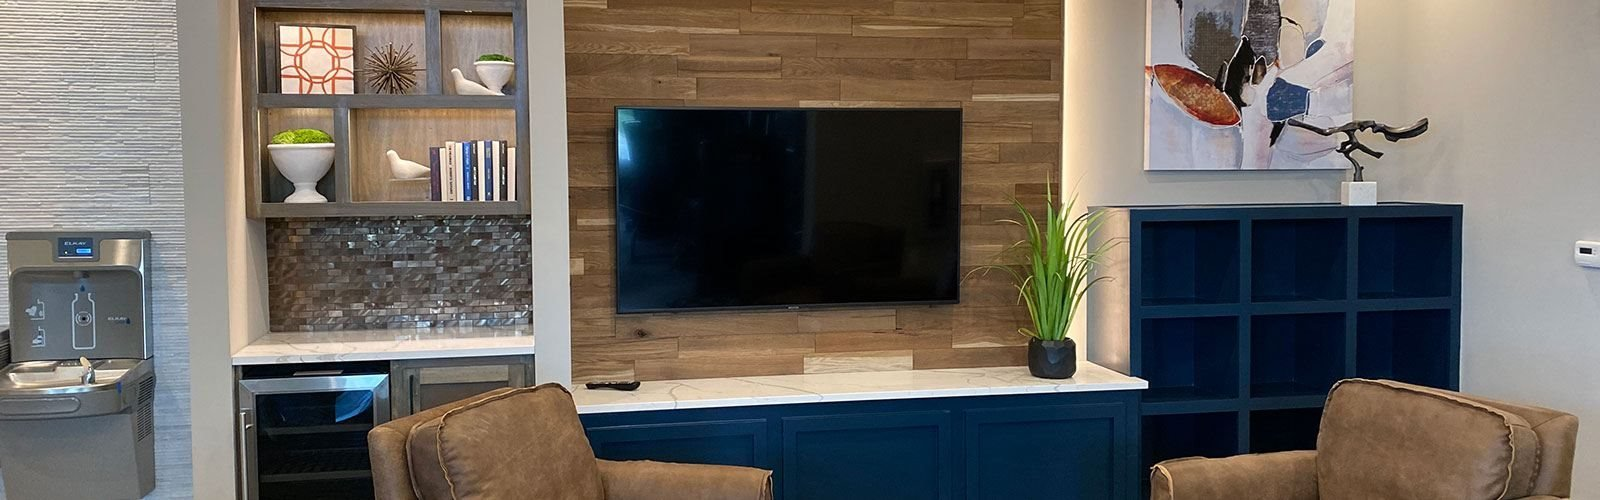 Living Room With Television at One Deerfield, Mason, OH, 45040